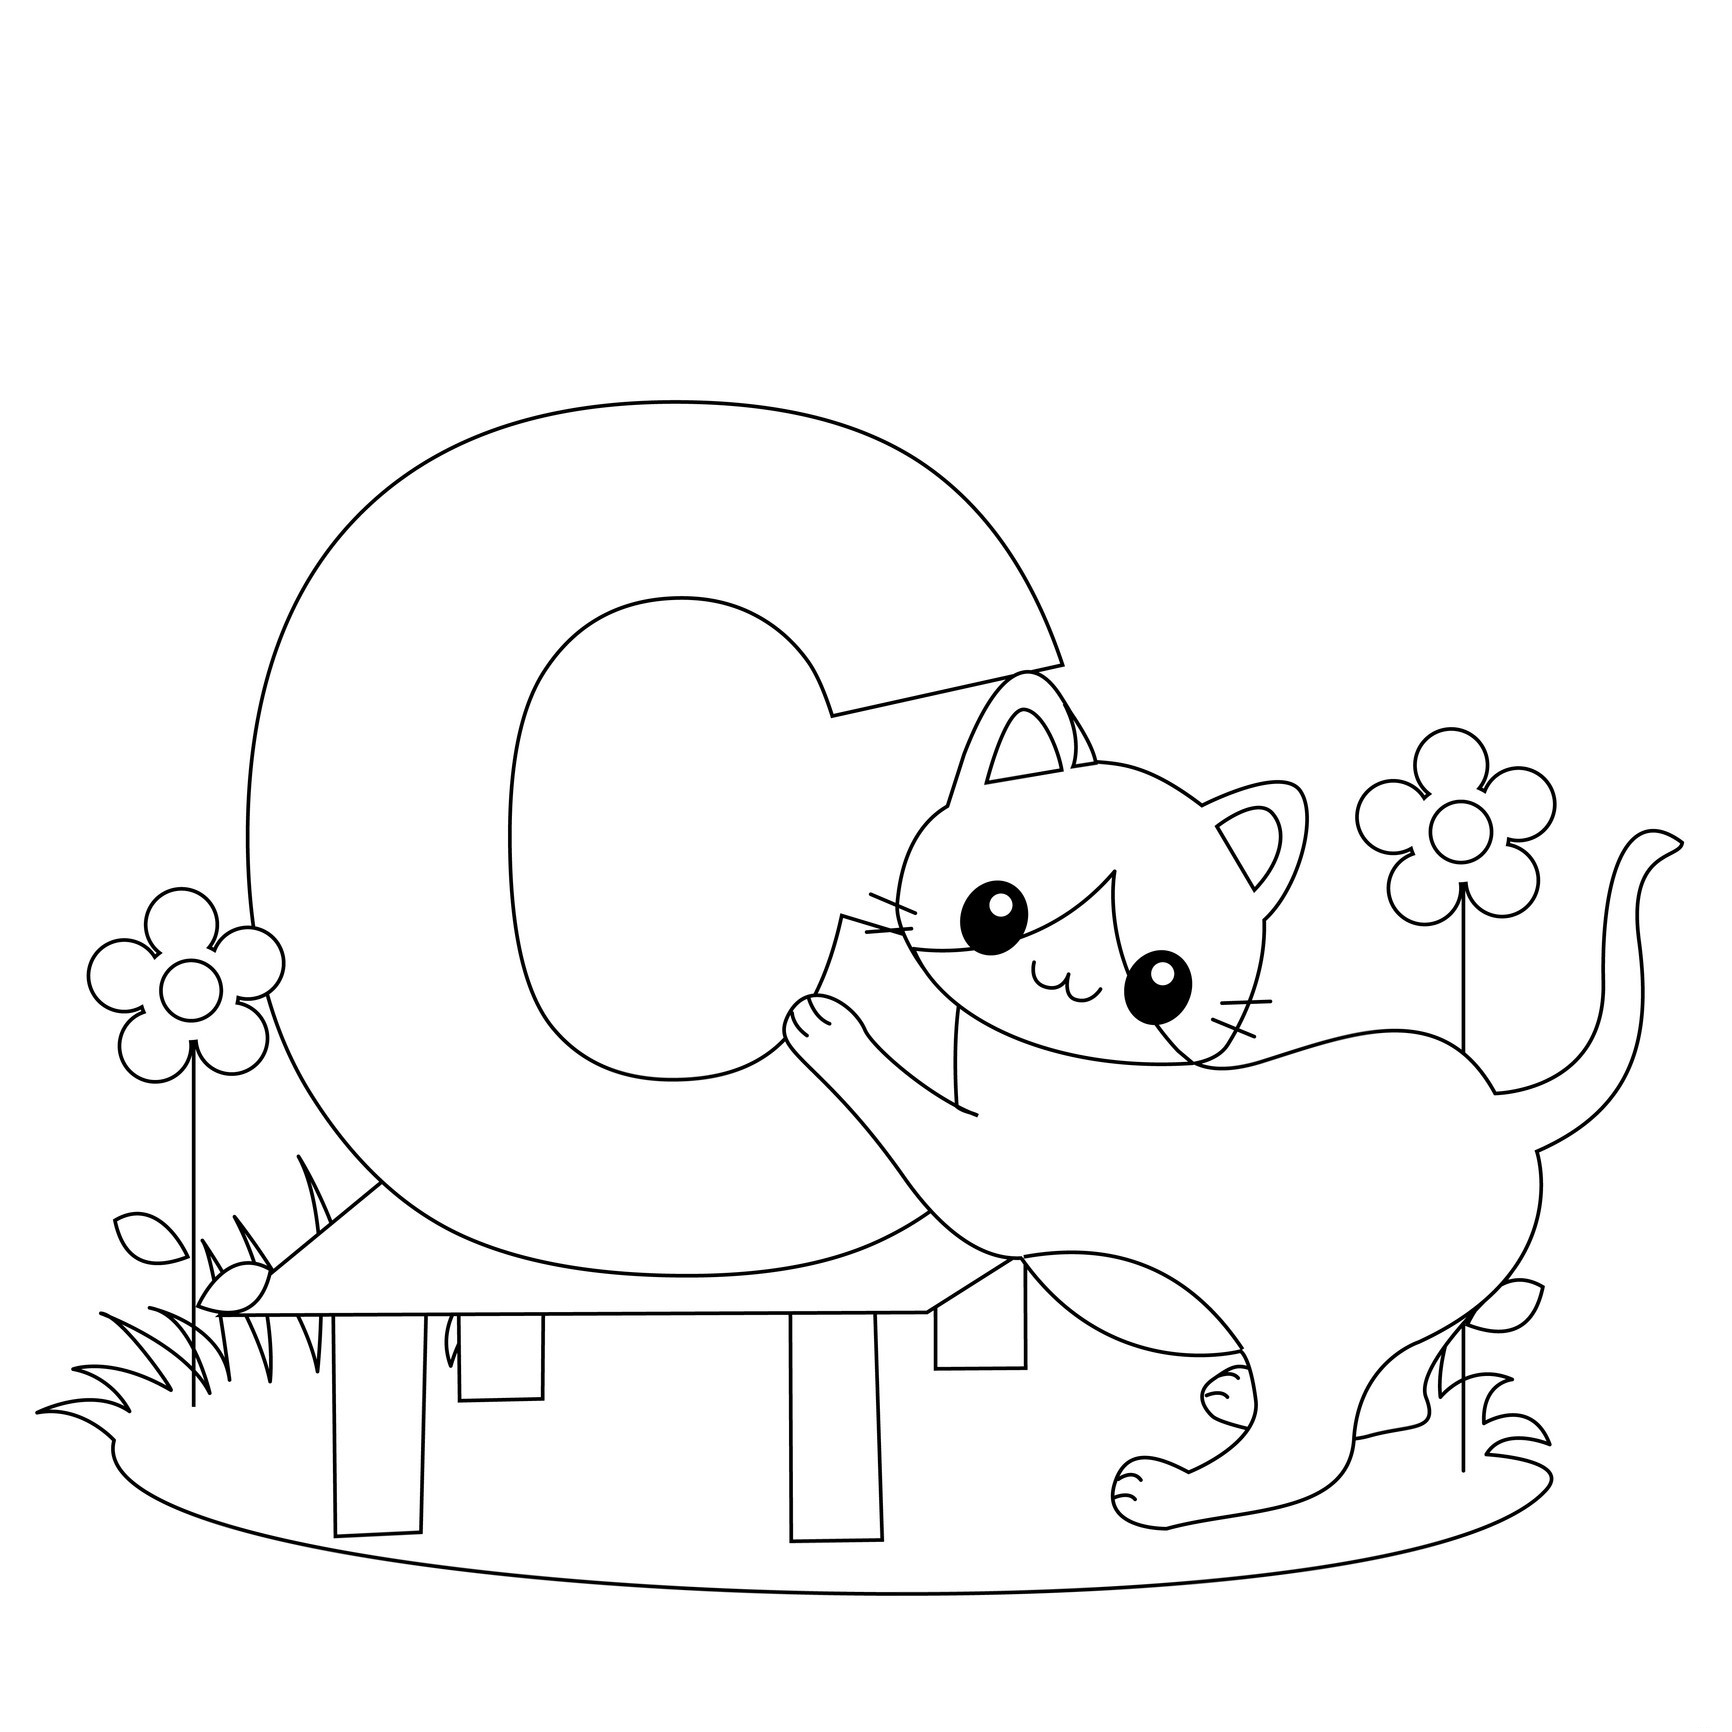 alphabet coloring pages for preschool - photo#11